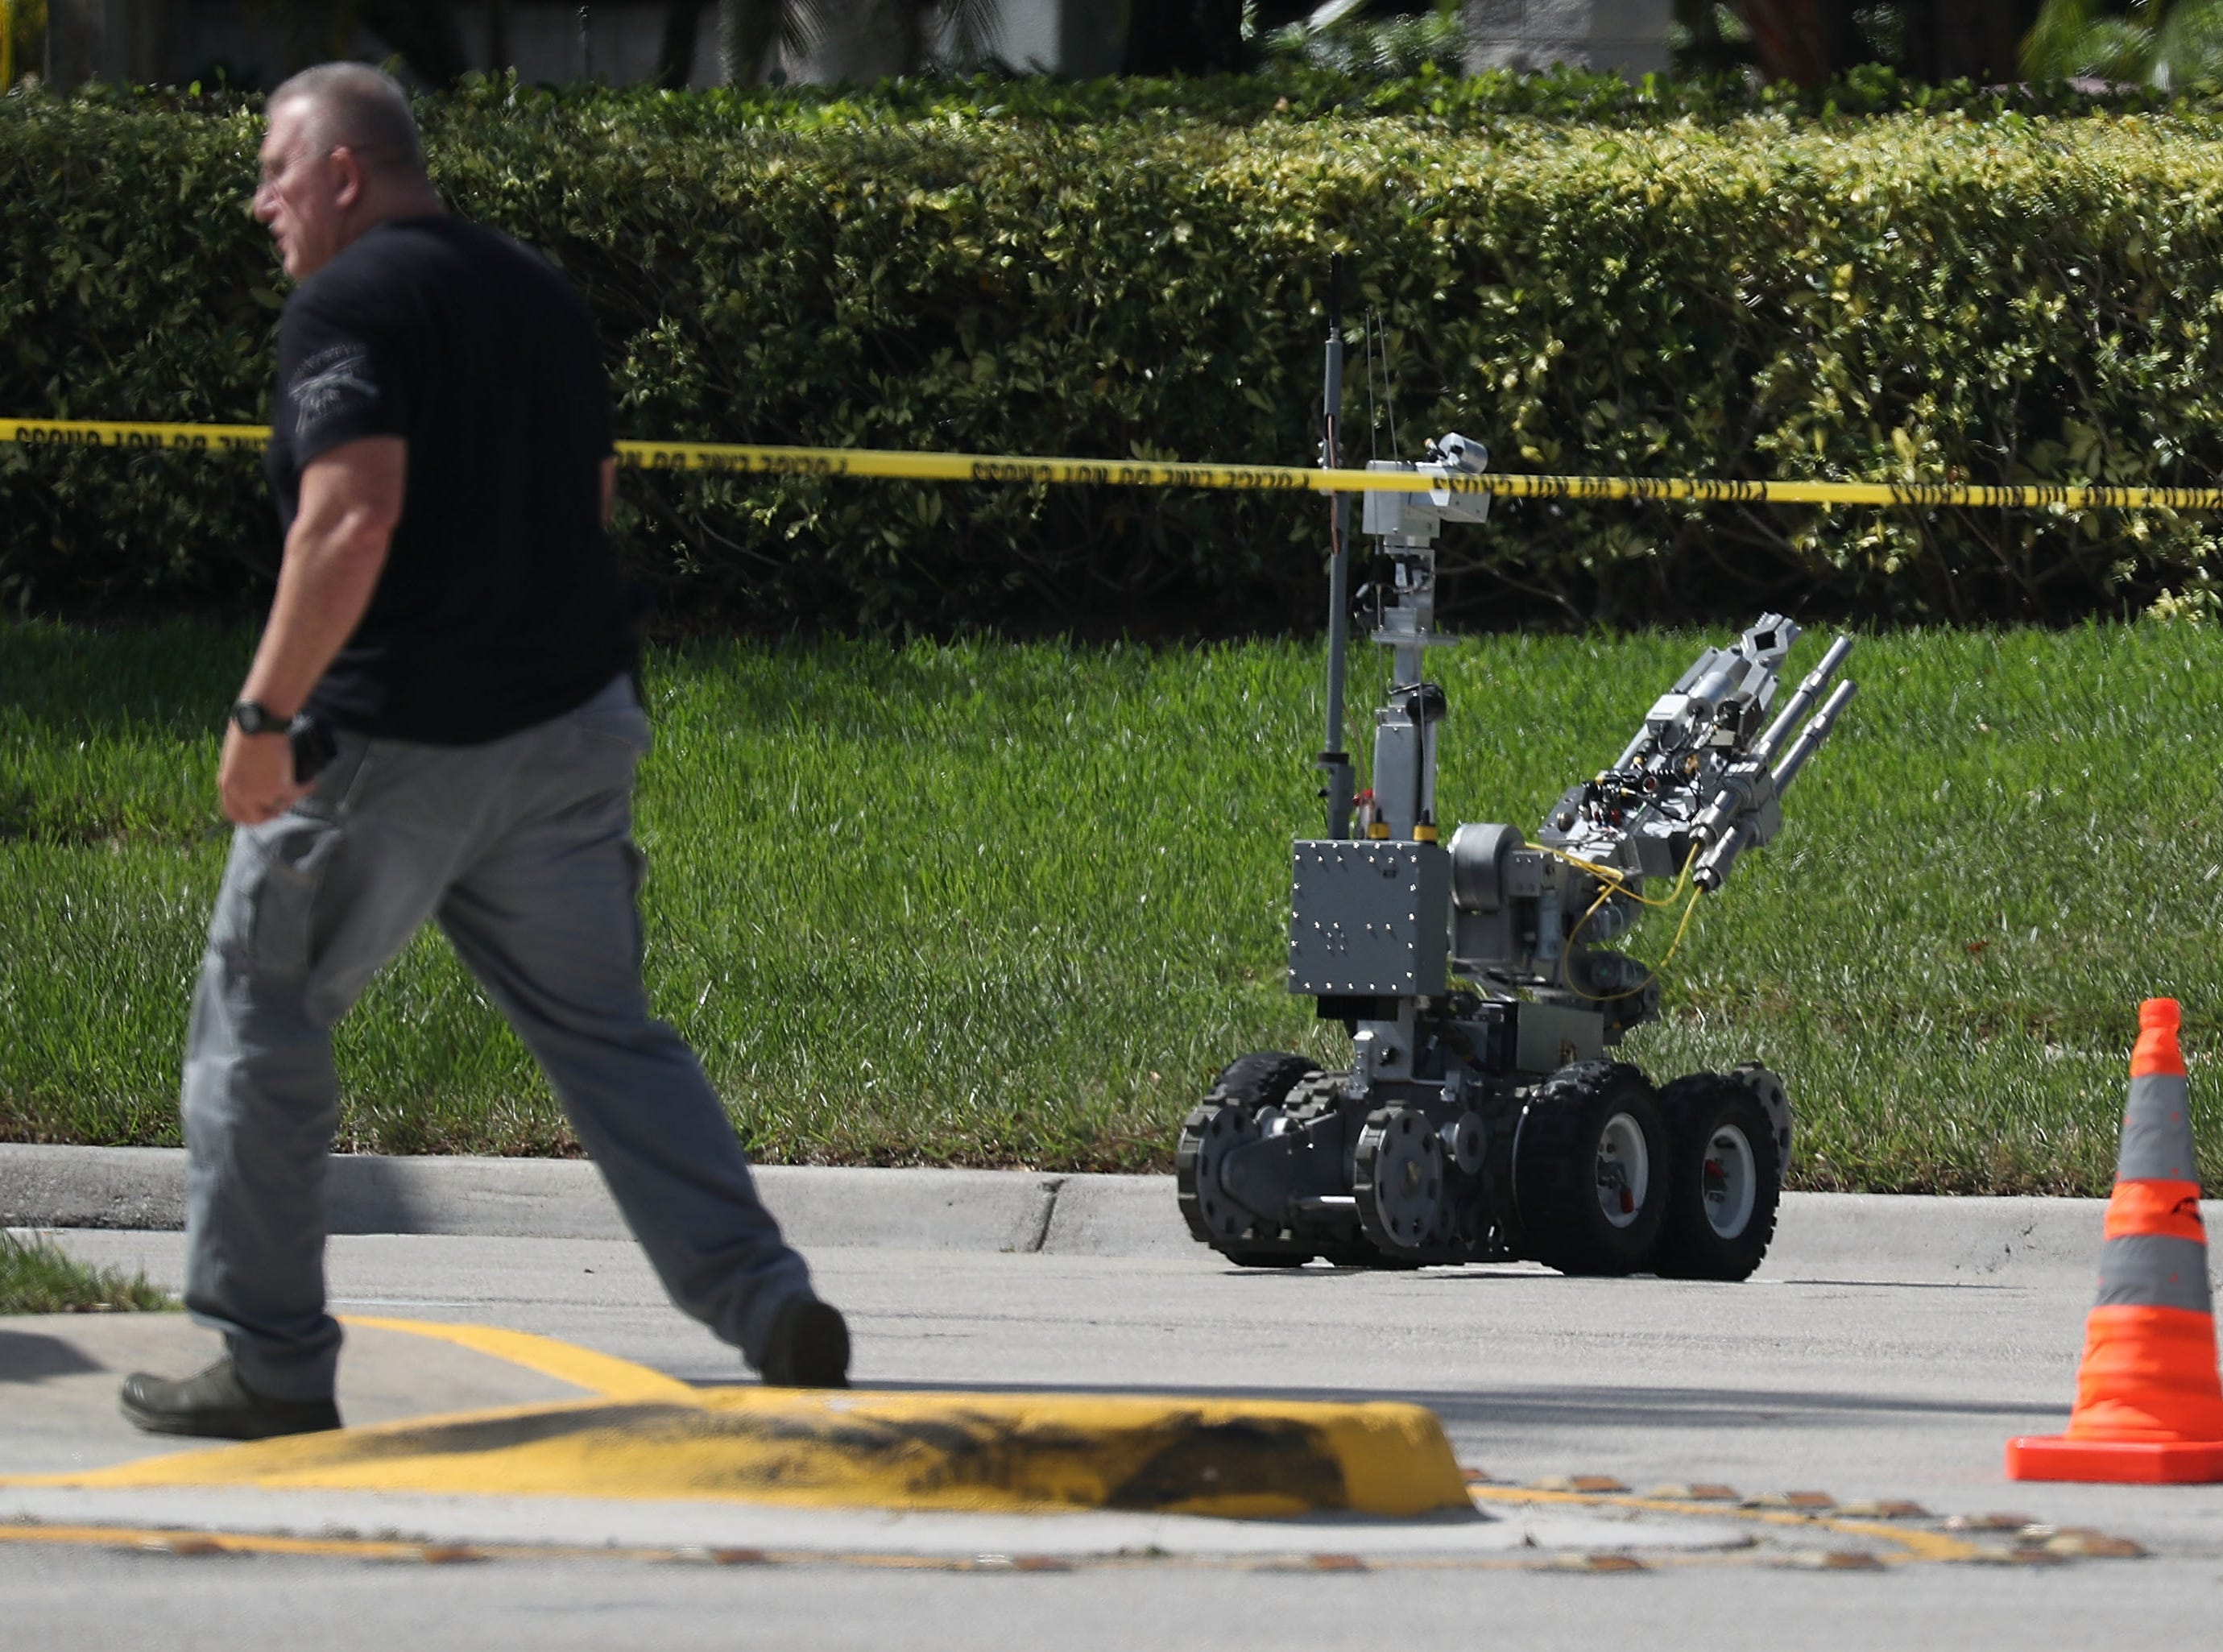 SUNRISE, FL - OCTOBER 24:  The Broward Sheriff's Office bomb squad deploys a robotic vehicle to investigate a suspicious package in the building where Rep. Debbie Wasserman Schultz (D-FL) has an offce on October 24, 2018 in Sunrise, Florida.  A number of suspicious packages arrived in the mail today intended for former President Barack Obama, Democratic presidential nominee Hillary Clinton and the New York office of CNN. (Photo by Joe Raedle/Getty Images) ORG XMIT: 775248002 ORIG FILE ID: 1052941302